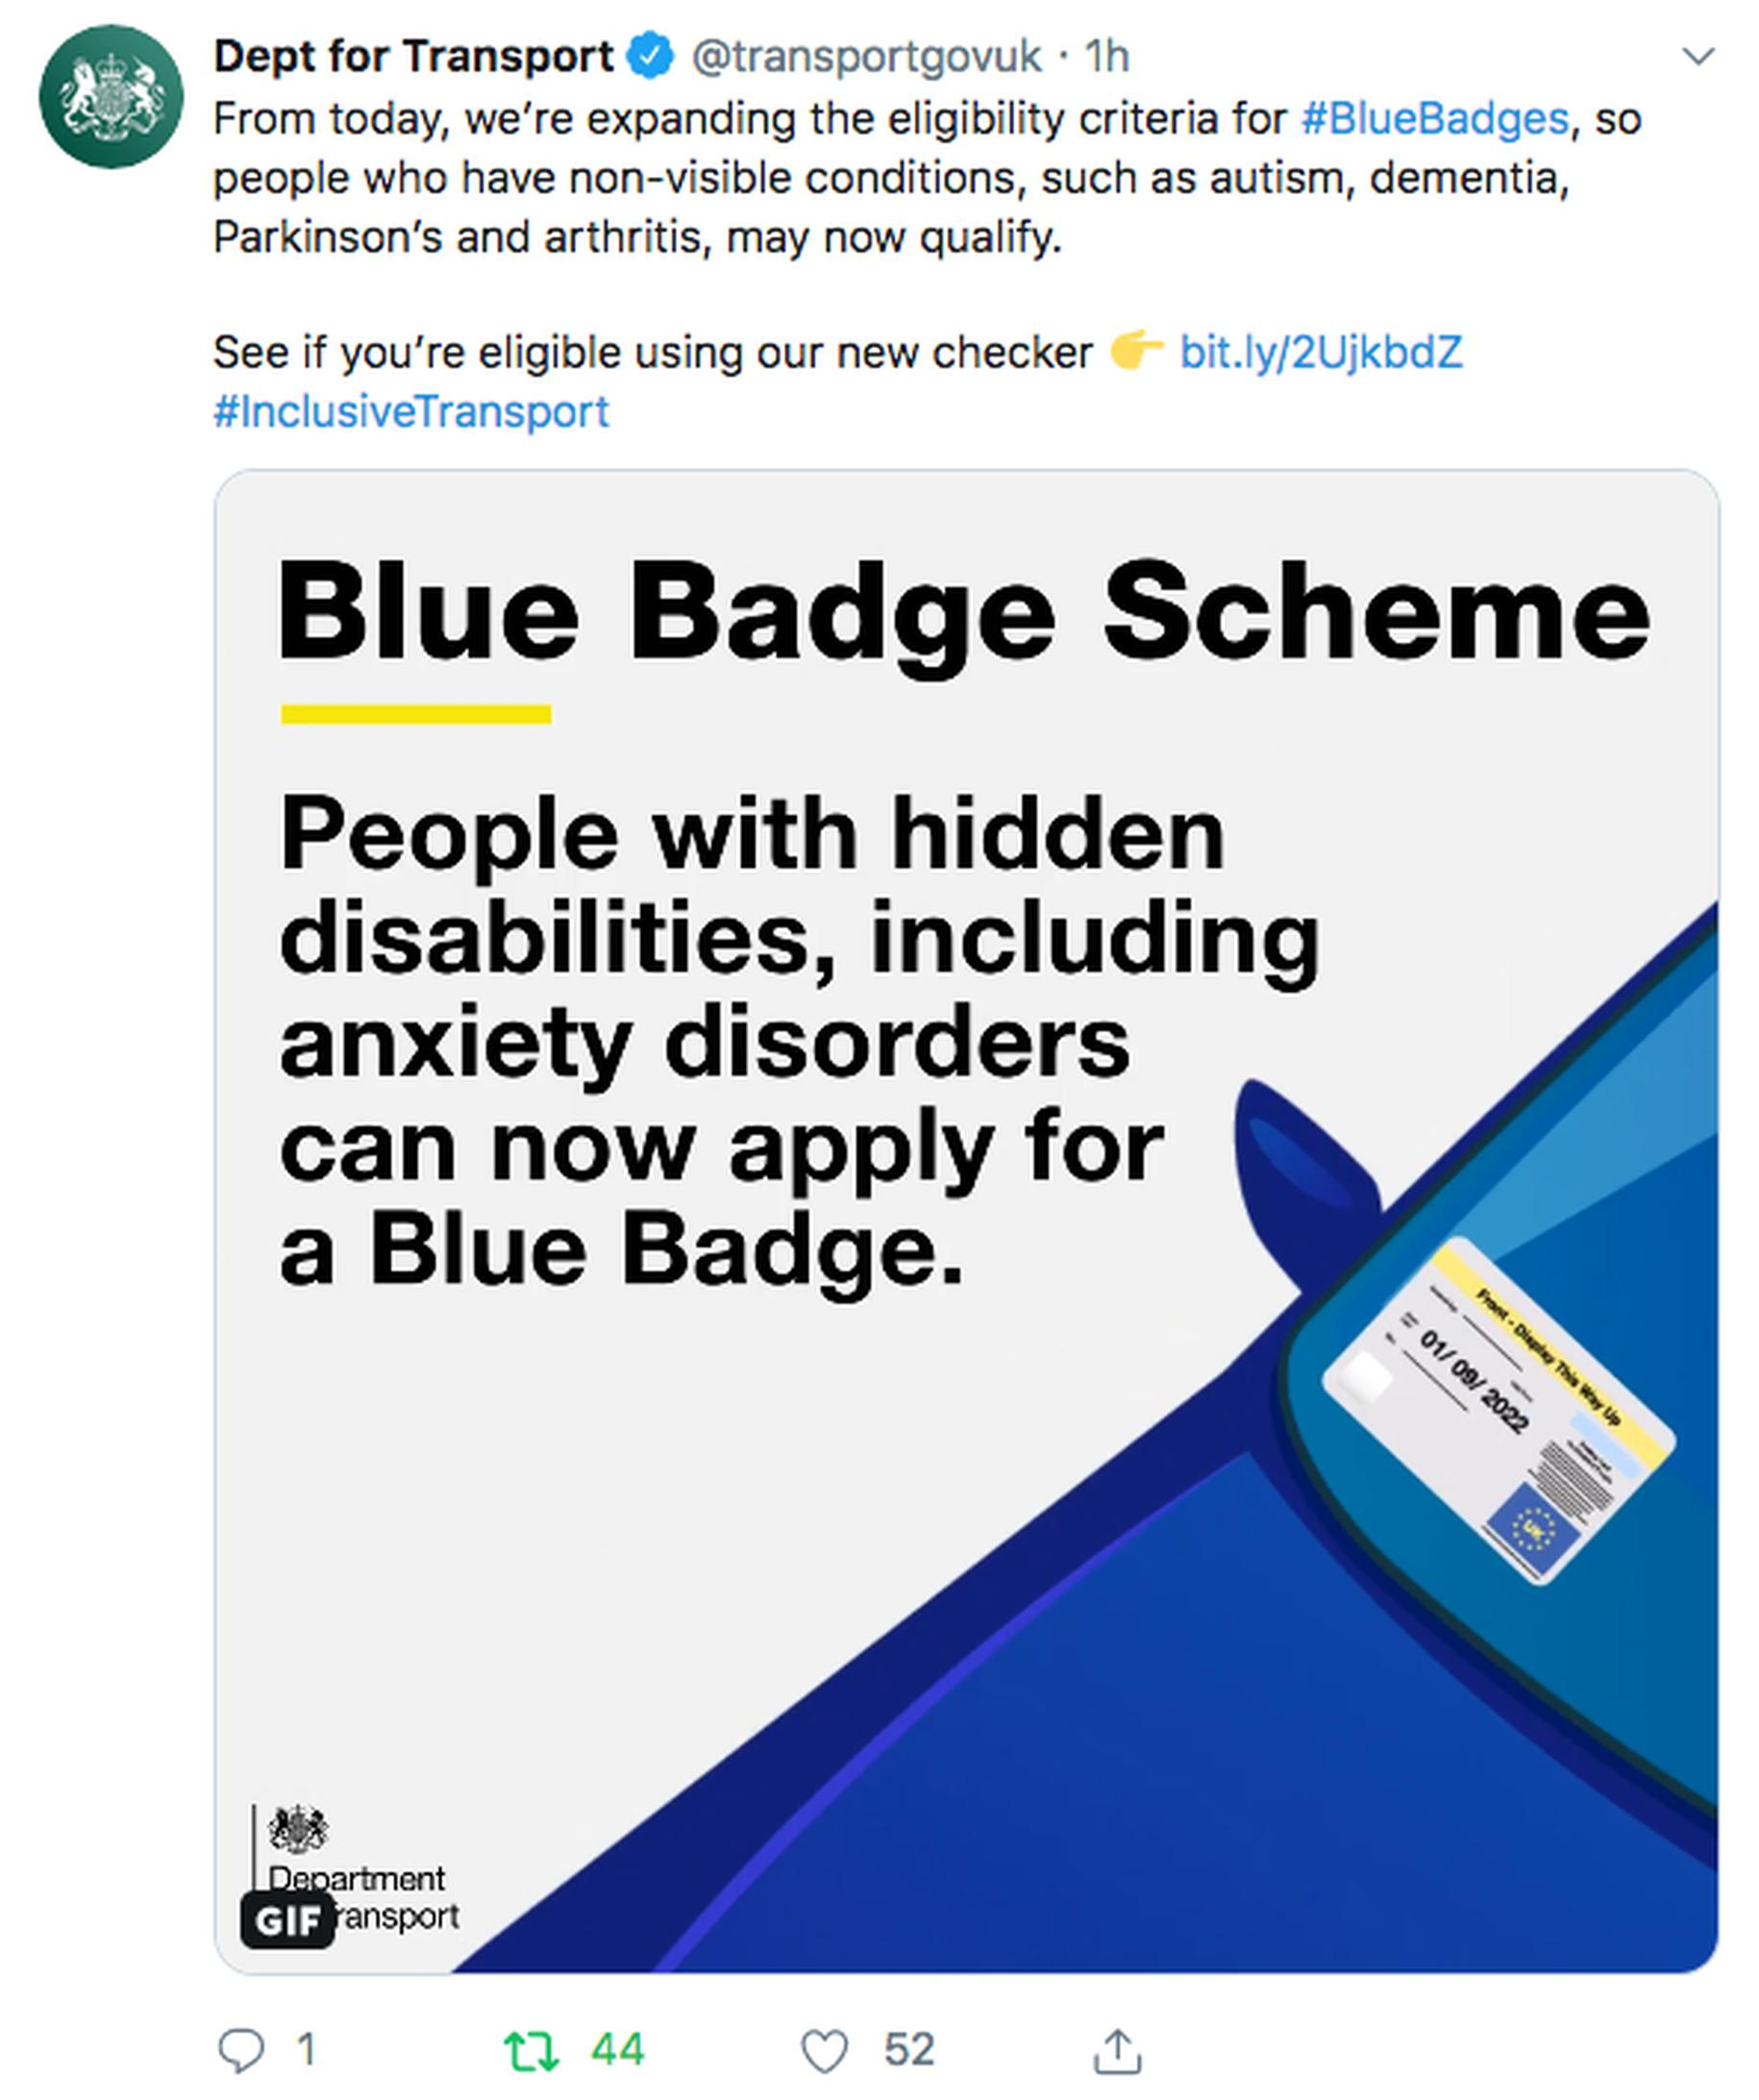 New Blue Badge eligibly criteria comes into effect